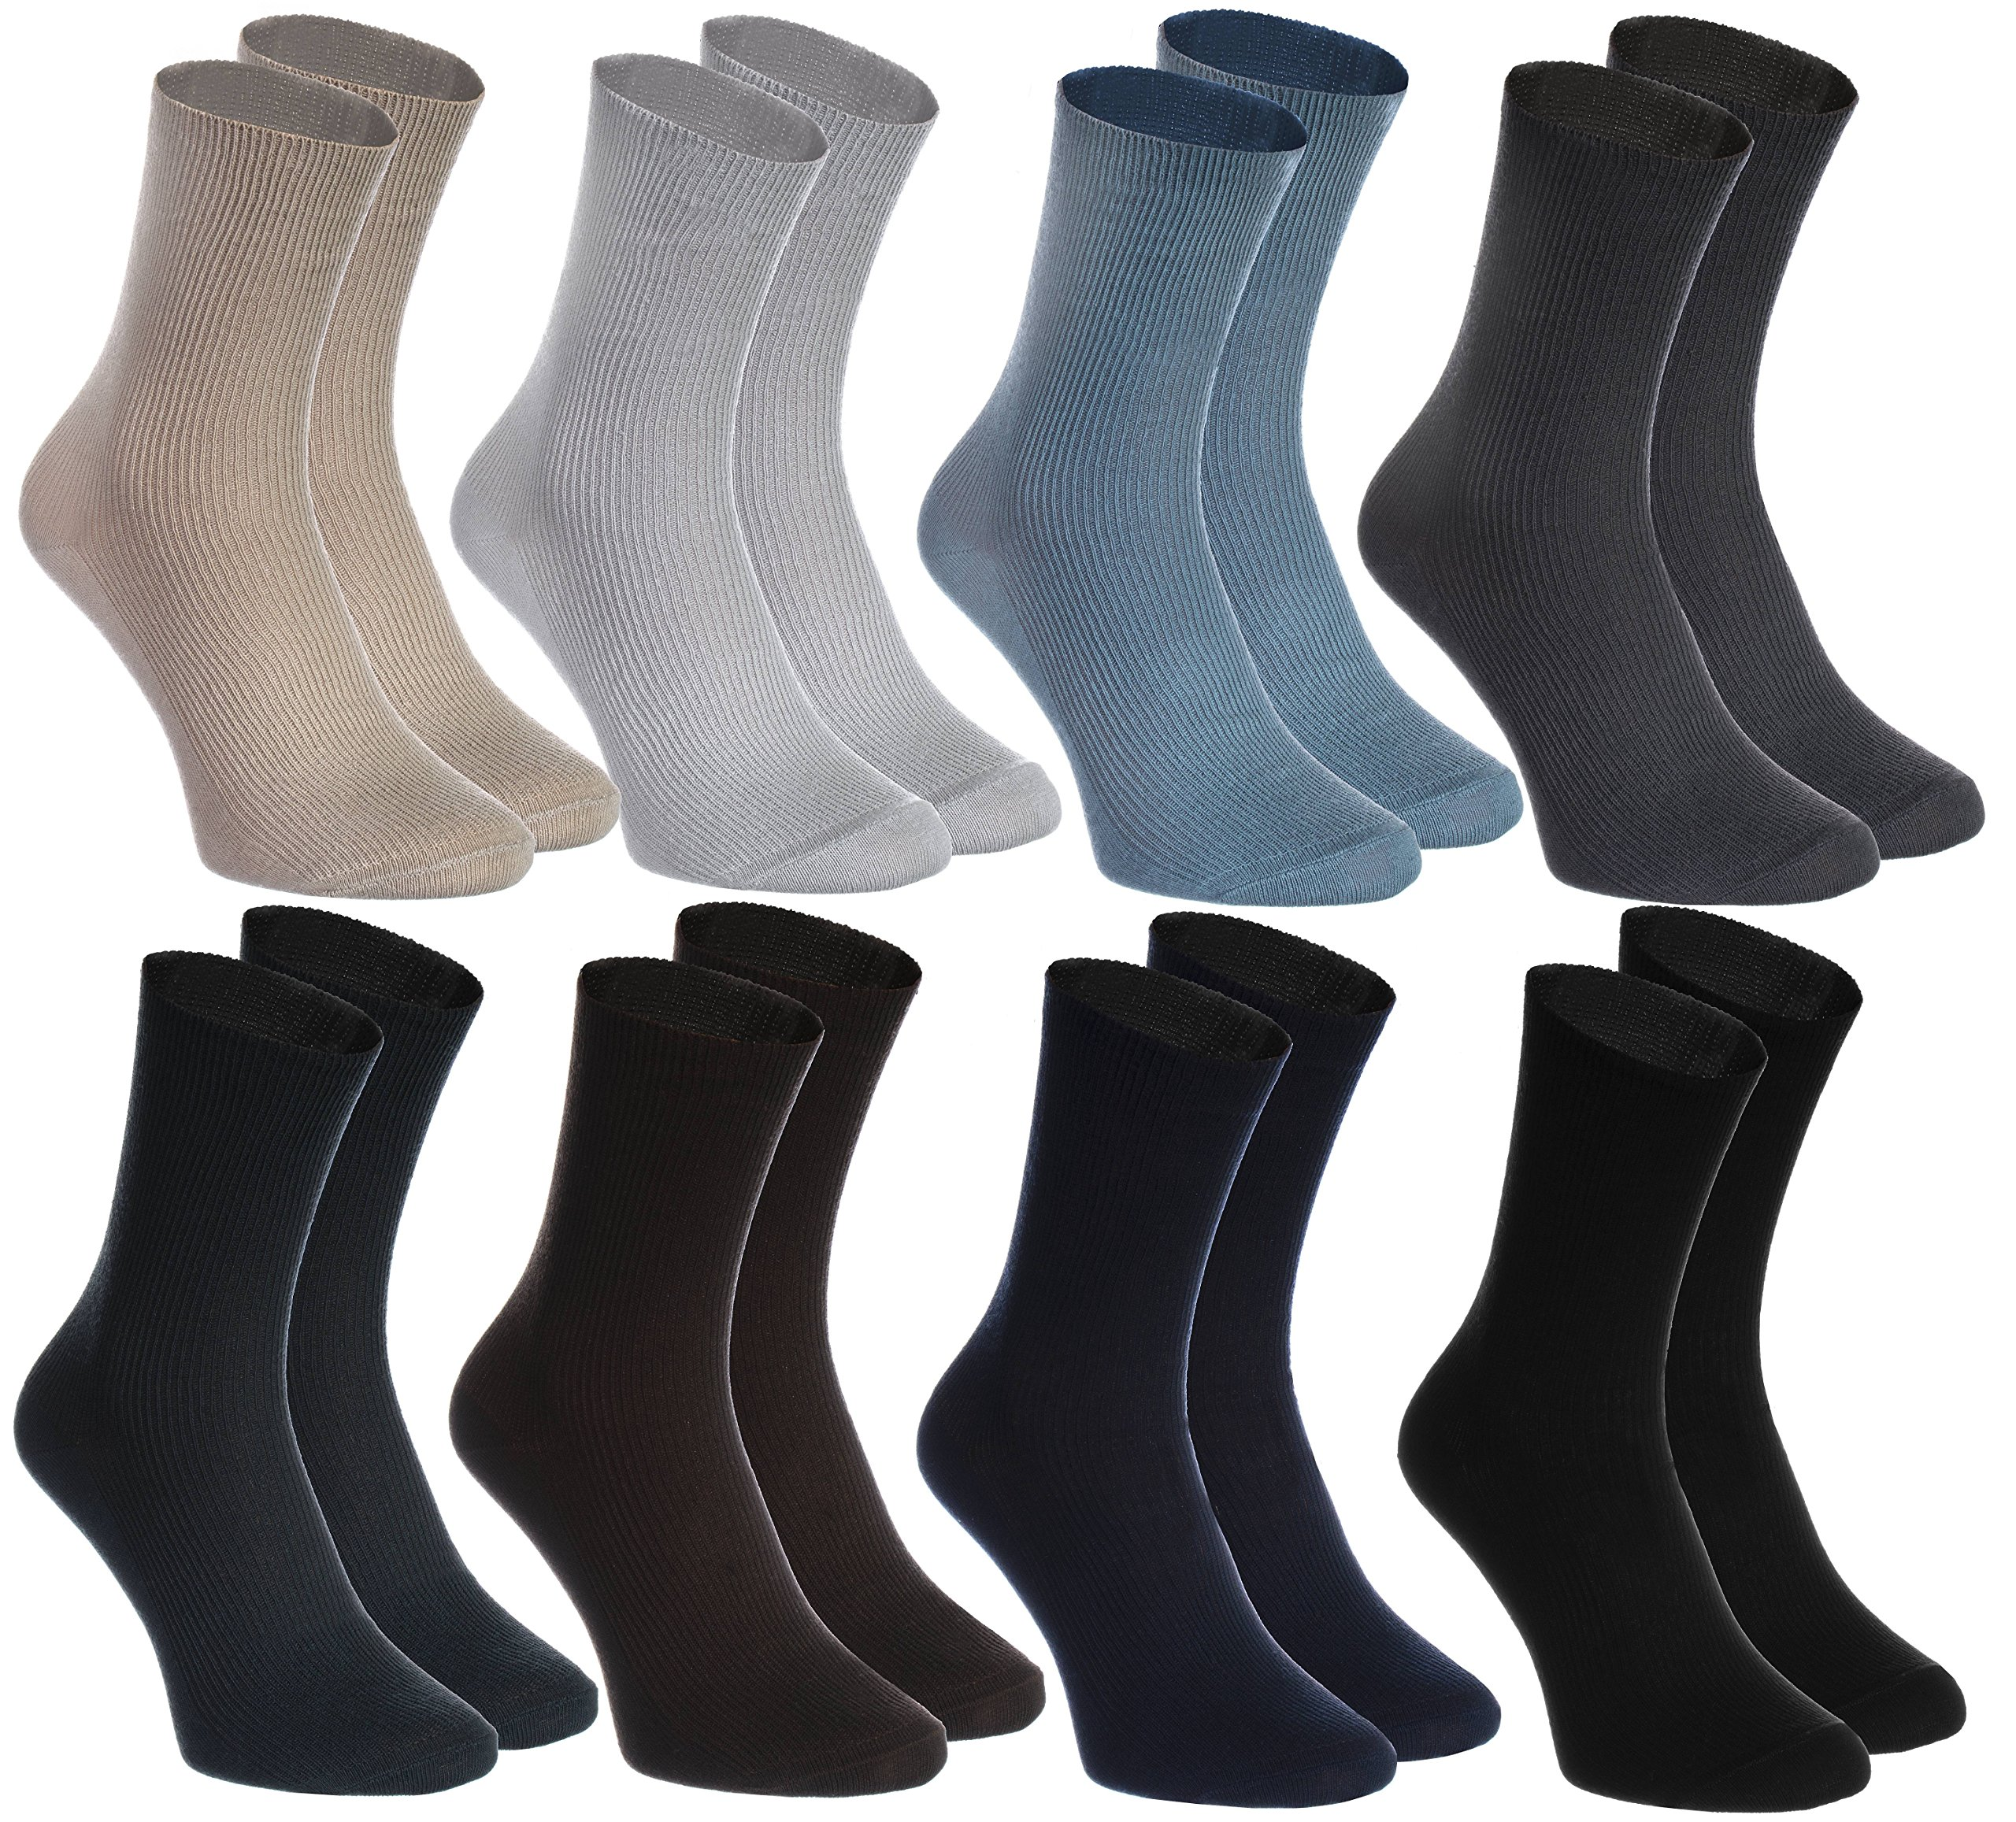 8 pairs of DIABETIC Non-Elastic Cotton Socks for SWOLLEN FEET, Classic Colors M by Rainbow Socks